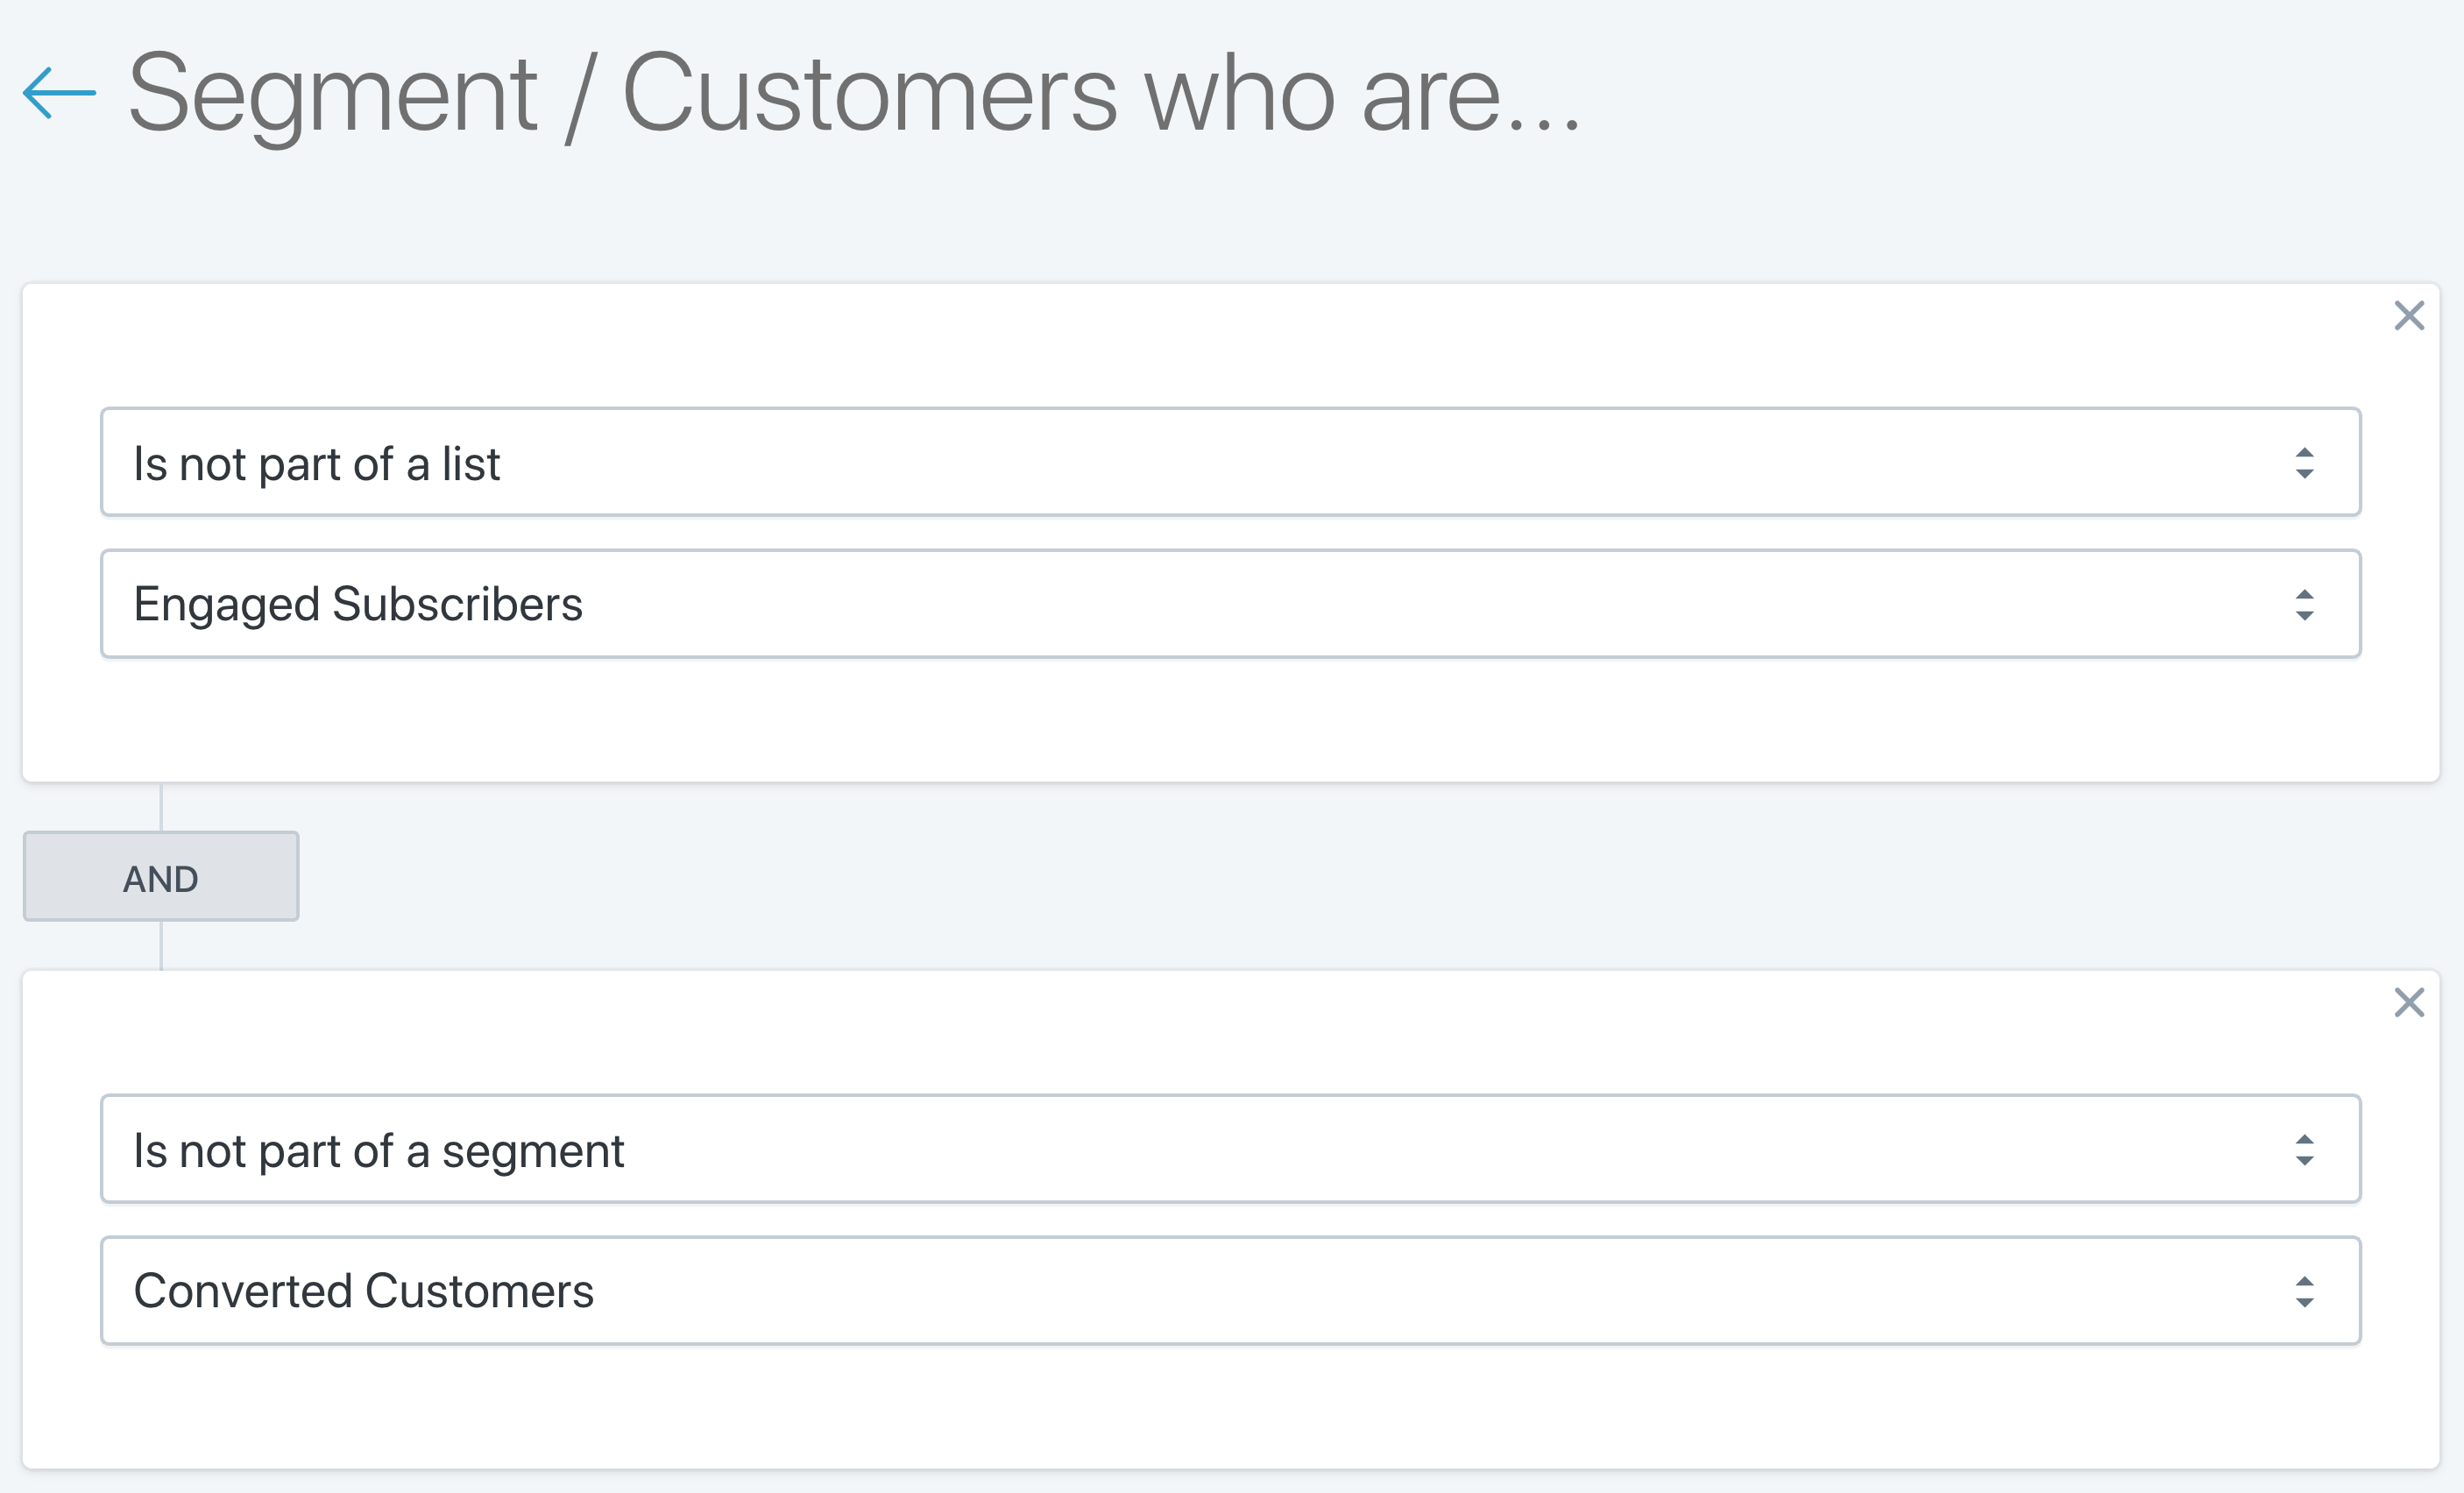 Customers who are not part of a contact list or segments